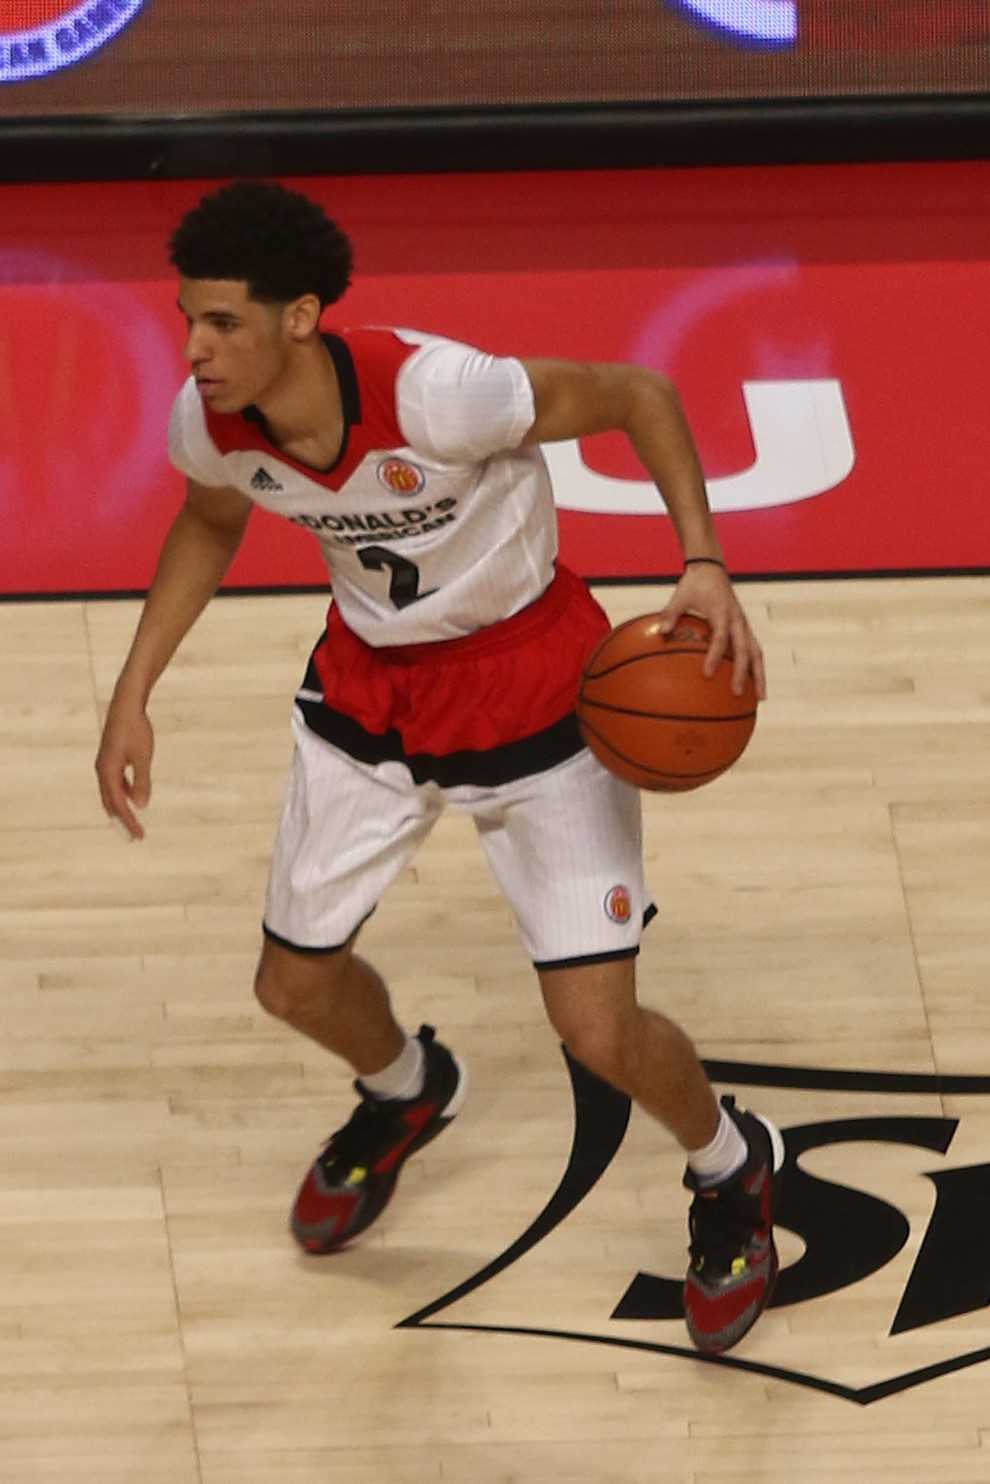 2bfd2dc6631 Lonzo Ball - Wikipedia